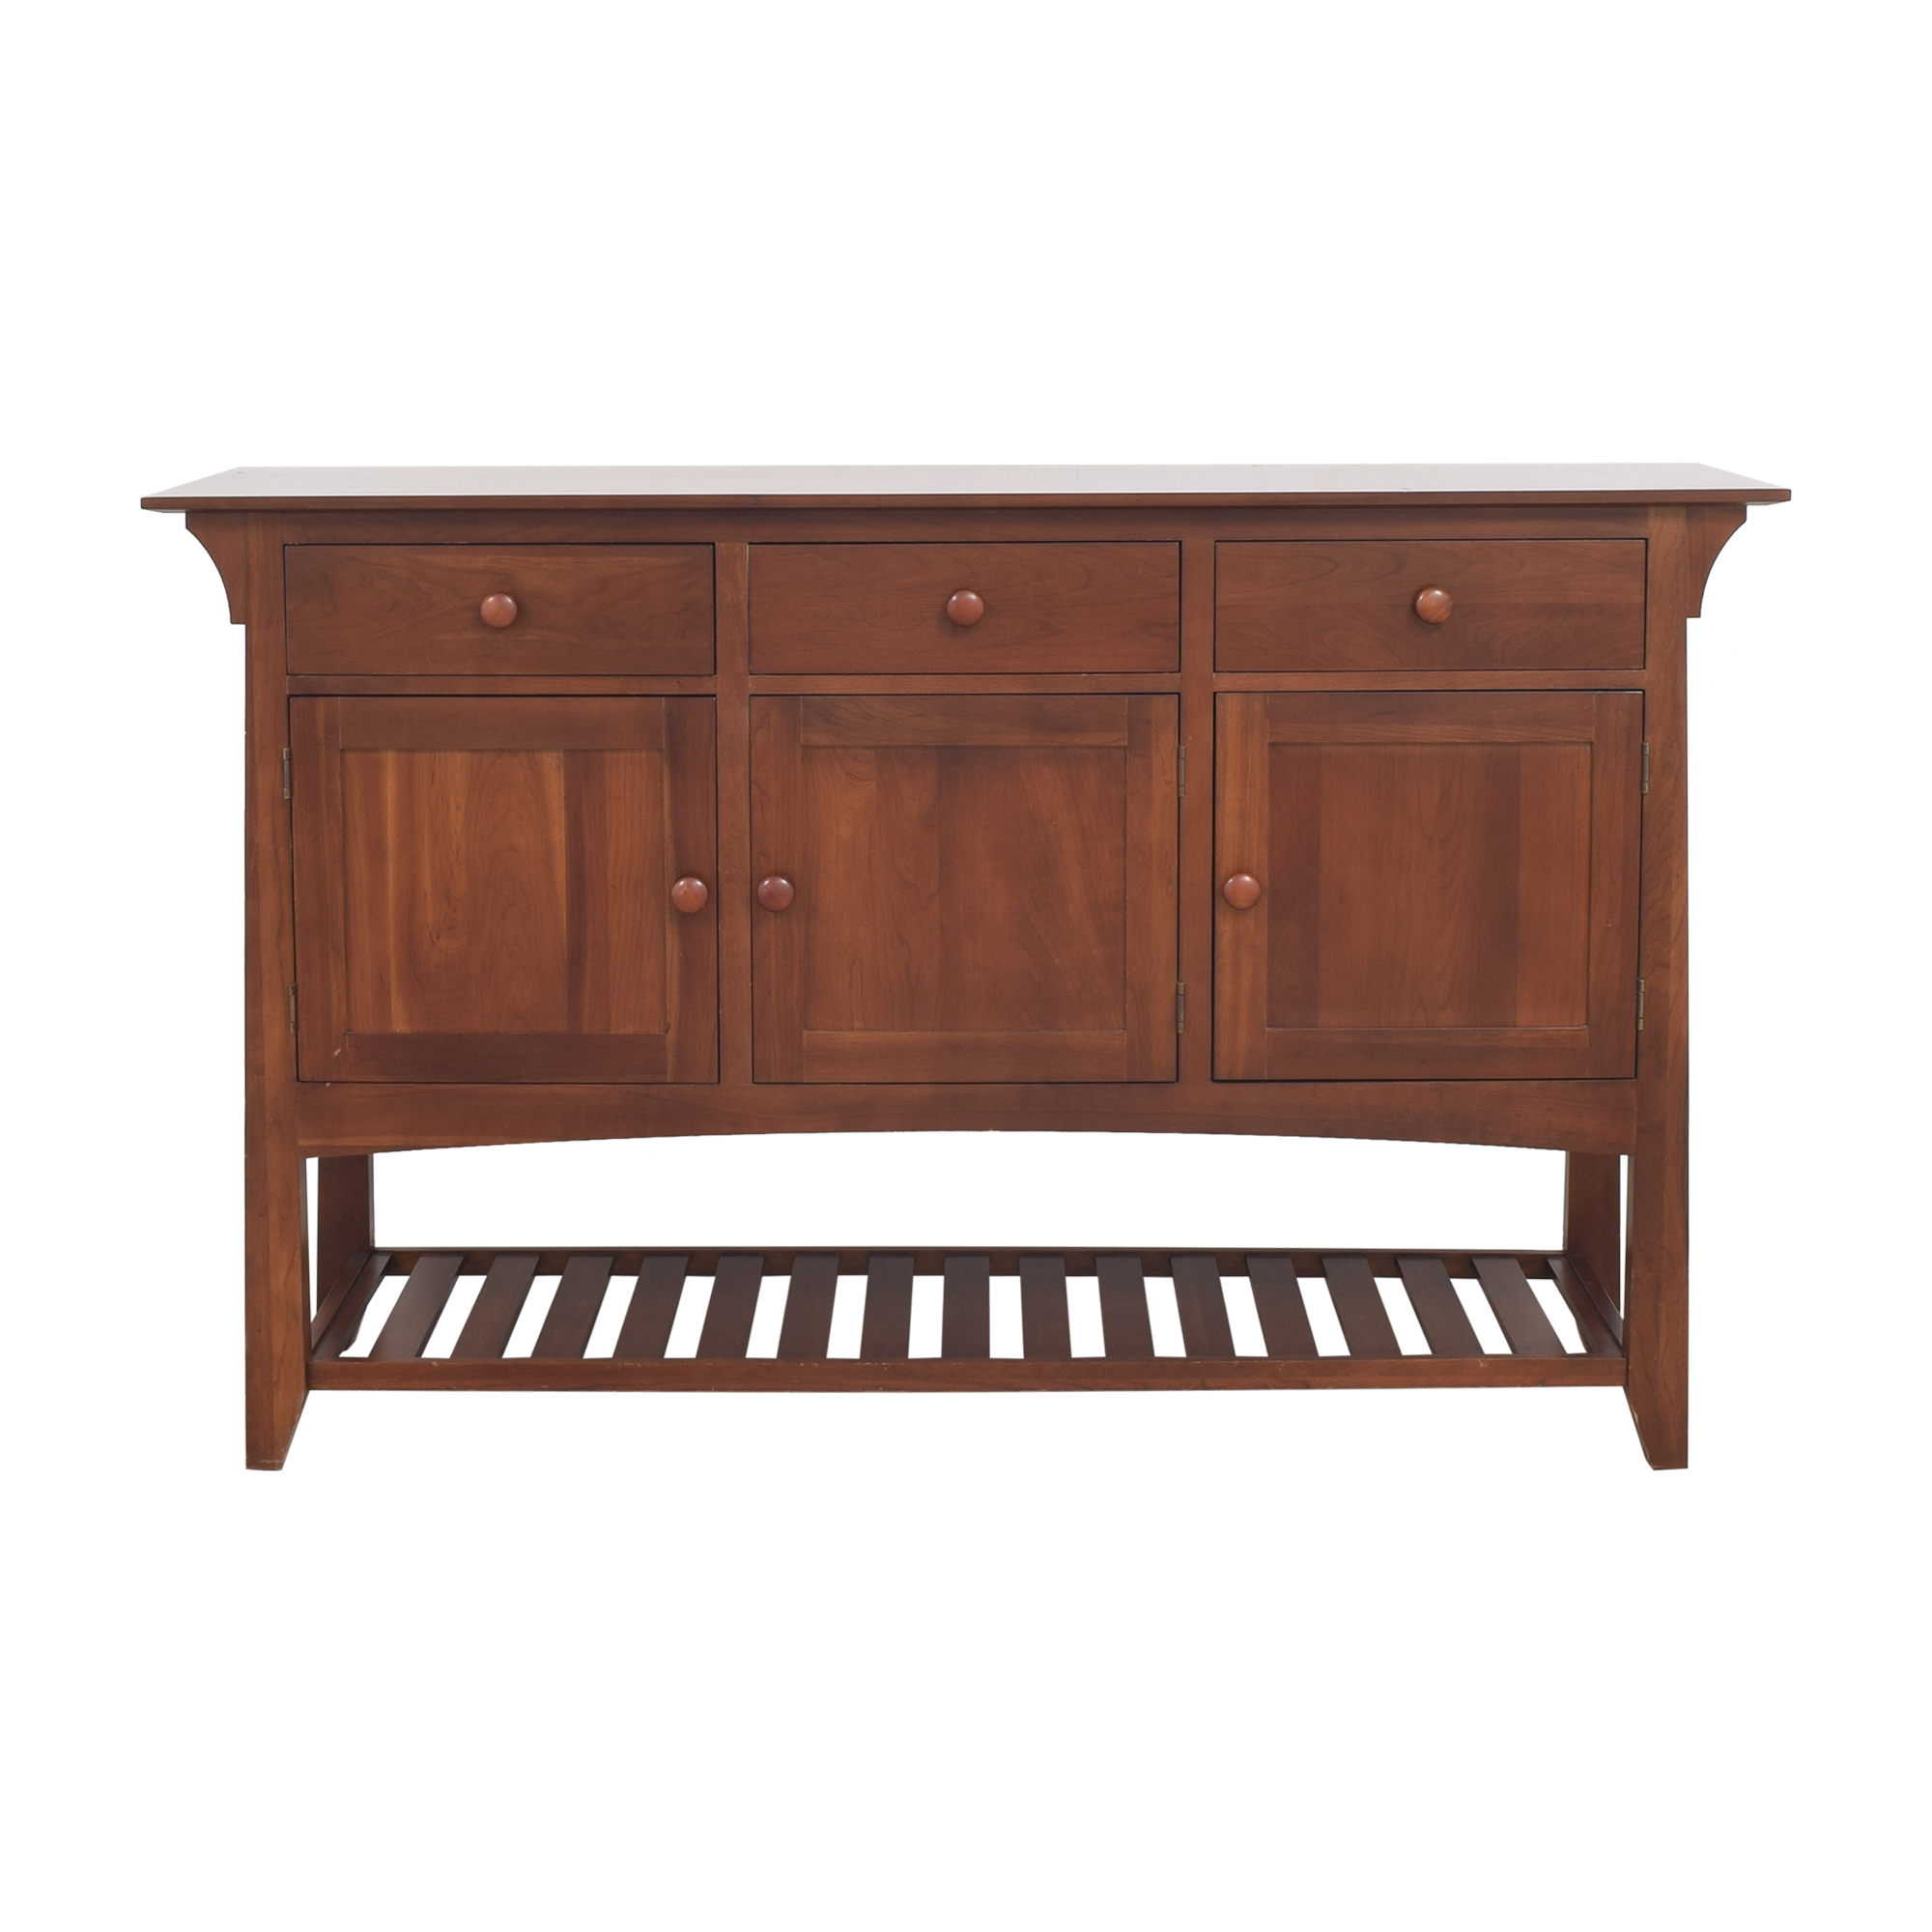 Ethan Allen Ethan Allen American Impressions Mission Server Buffet coupon